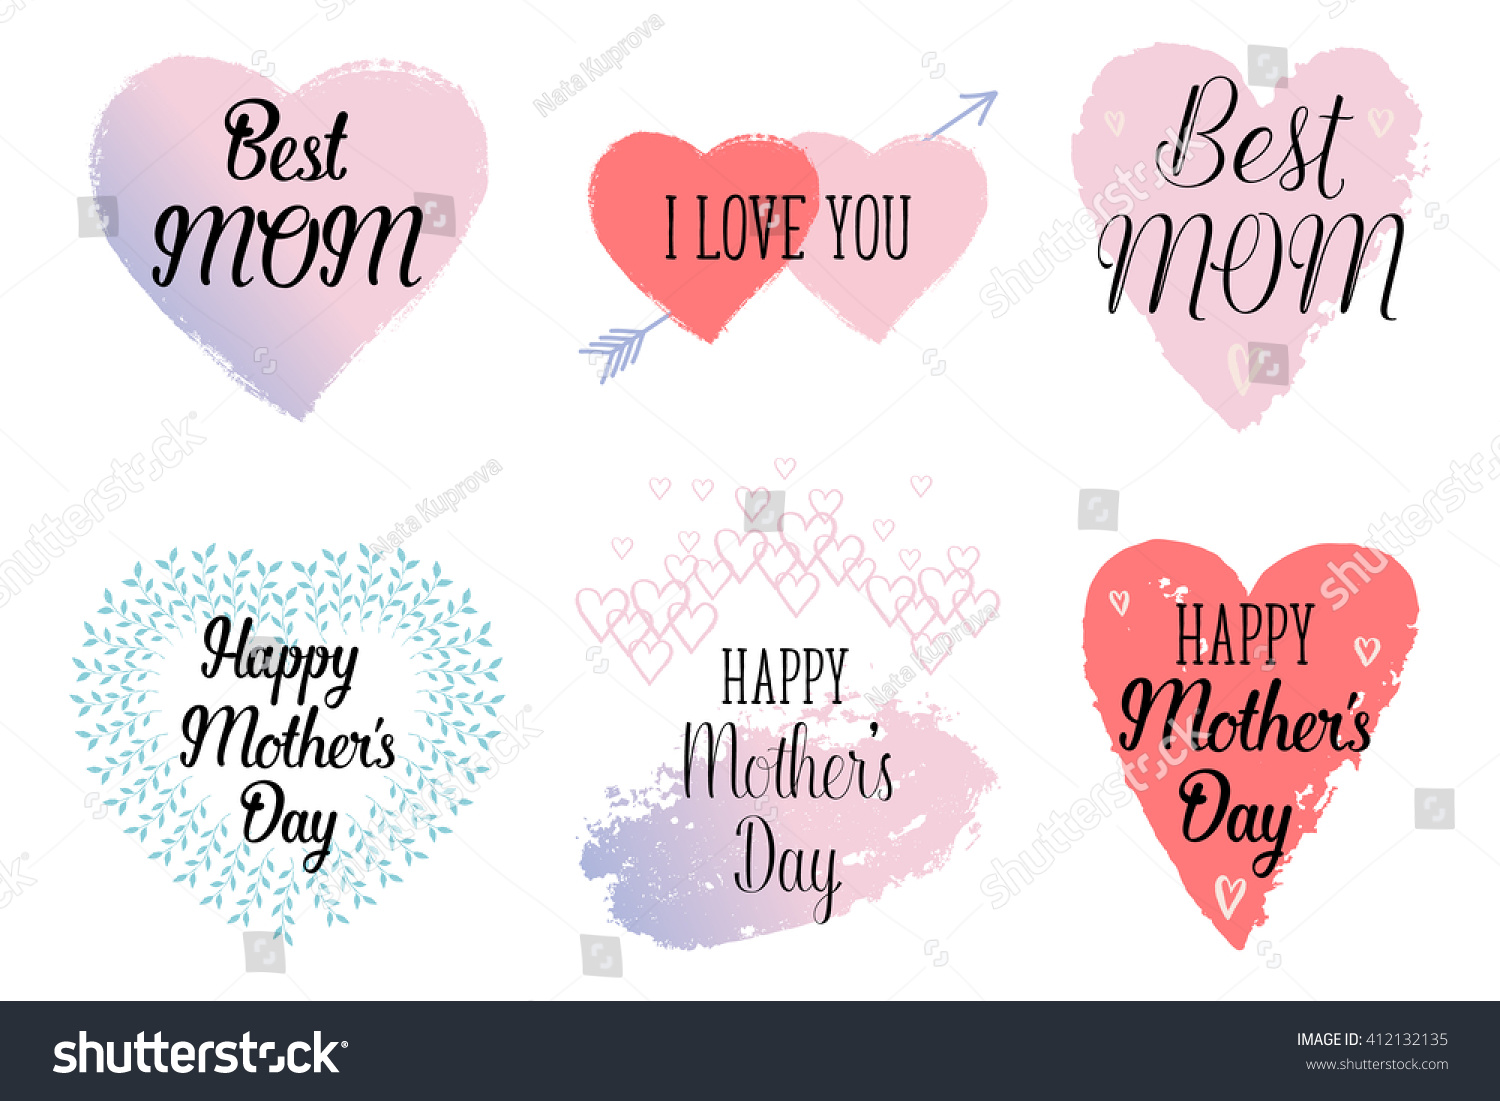 Happy Motherss Day Love You Best Stock Vector Royalty Free